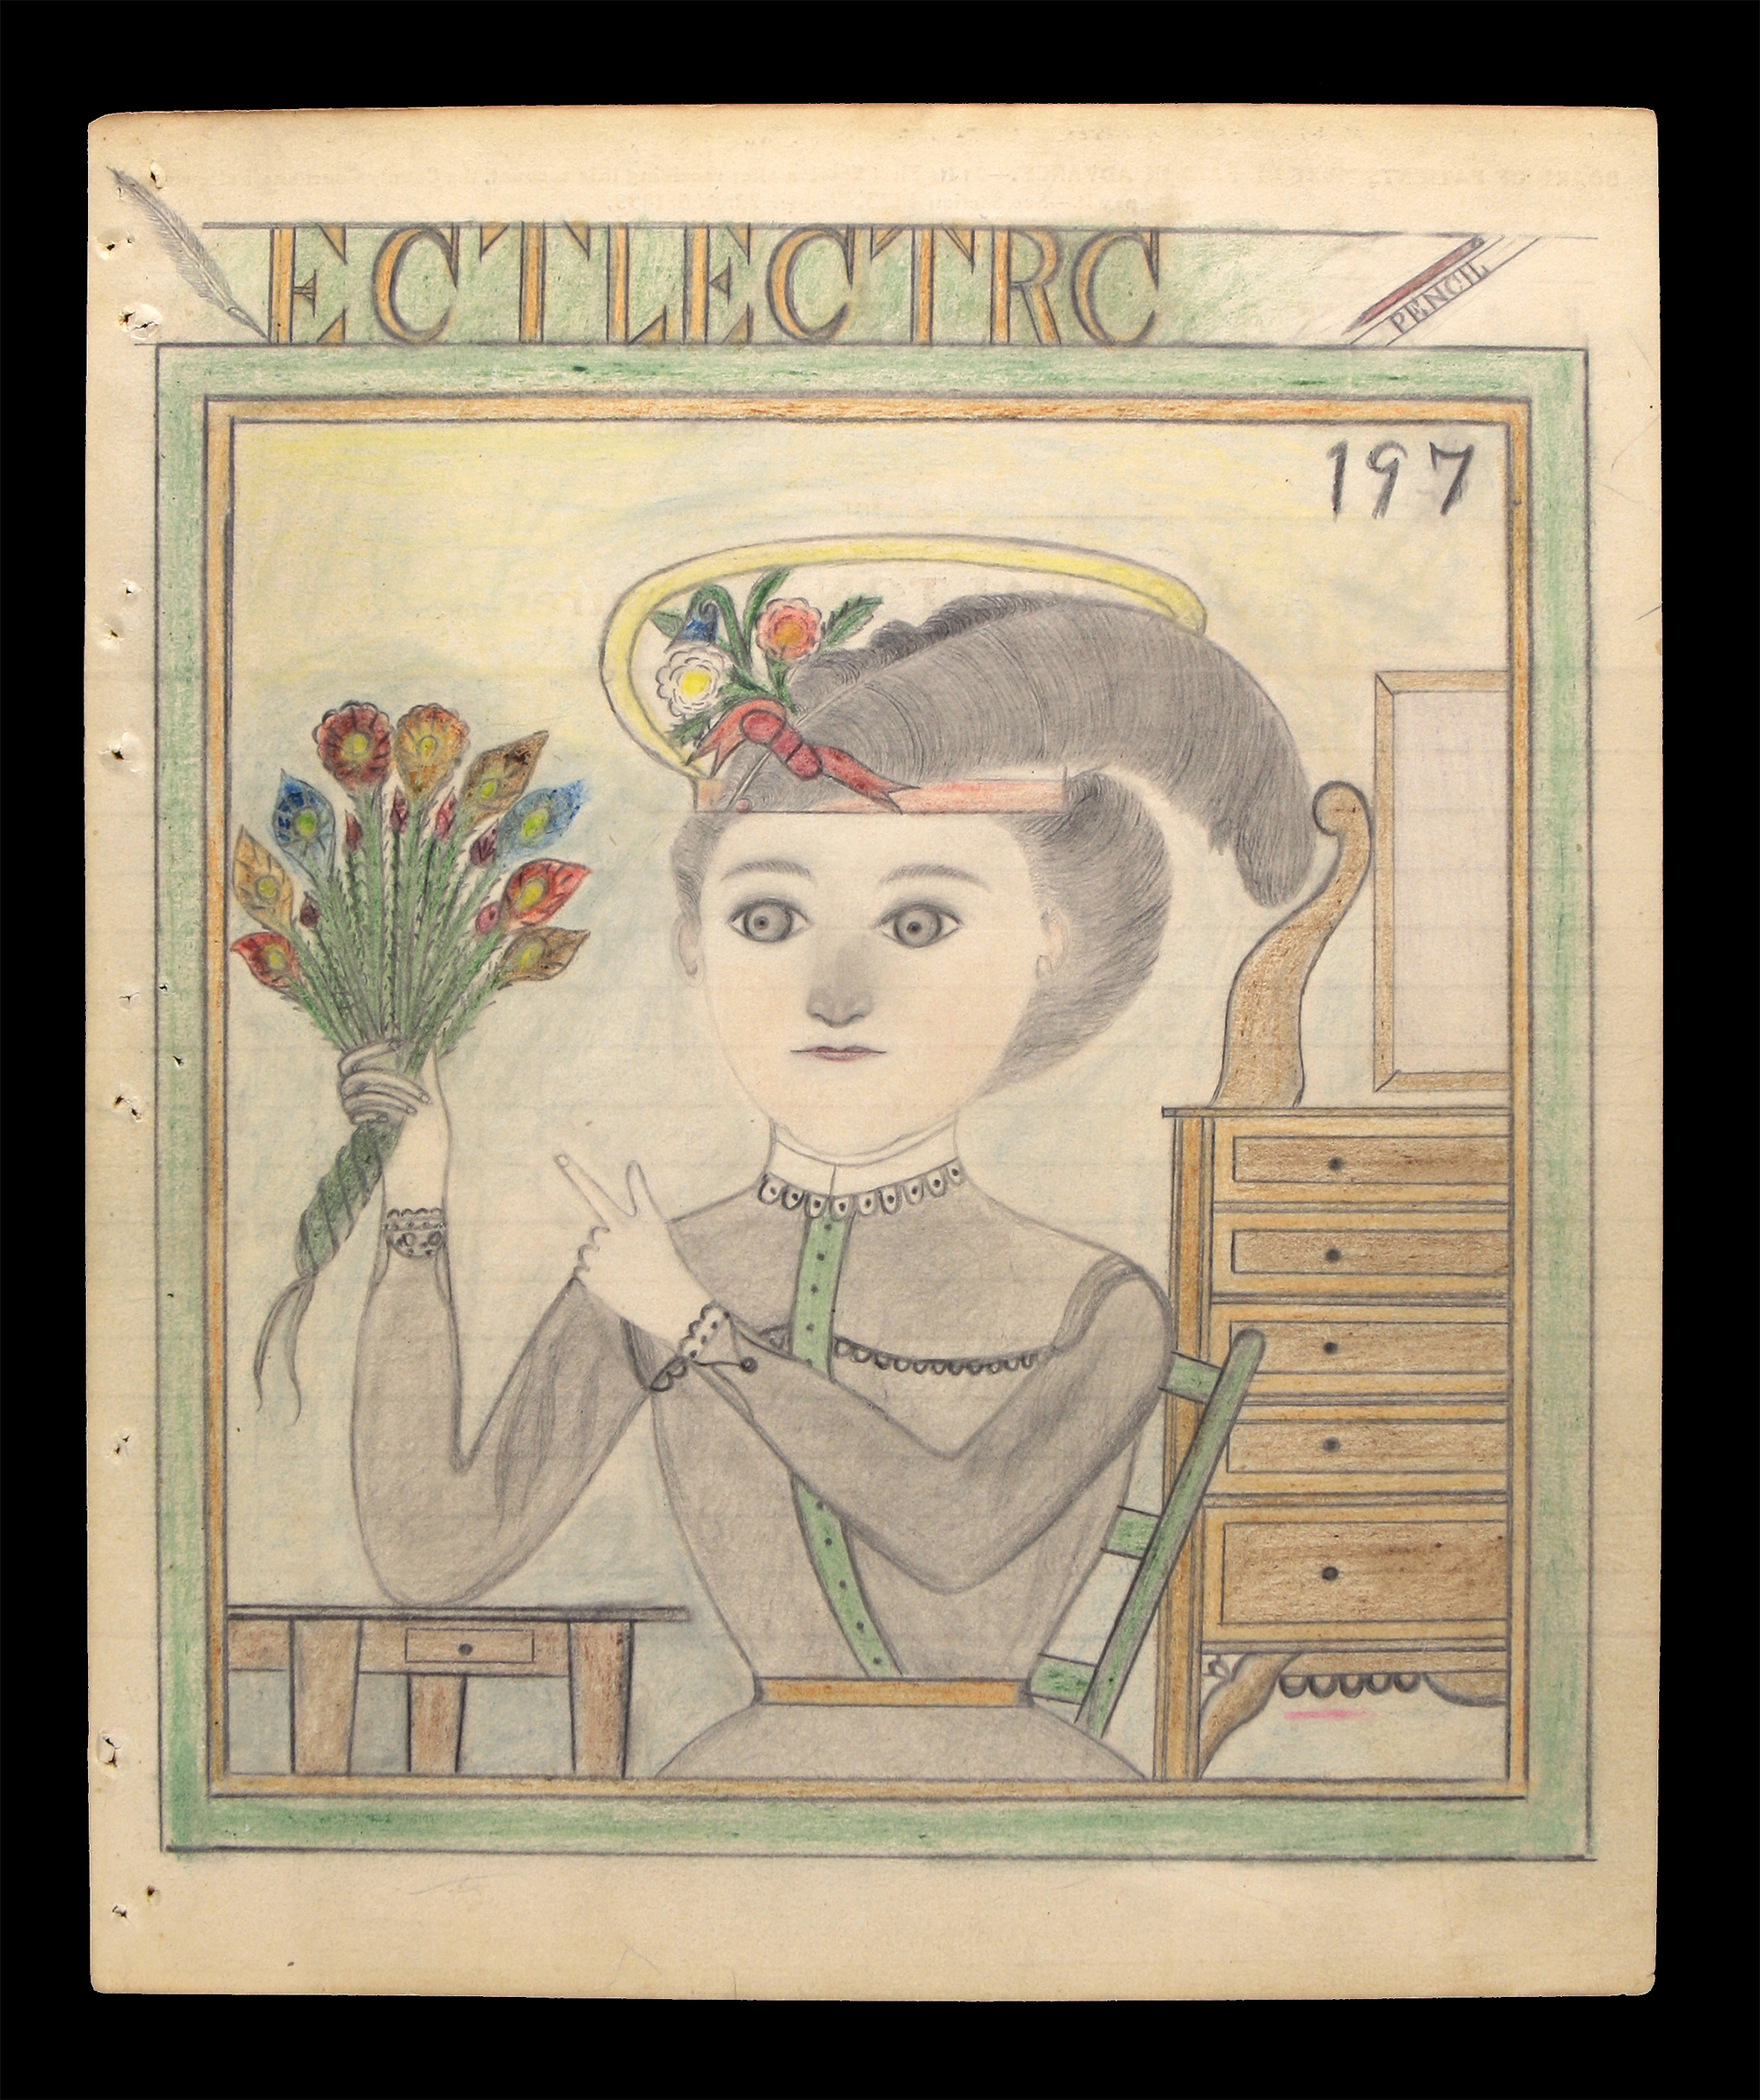 Ectlectrc Pencil: Lost Collection of Pencil Drawings Reveals Trials of Patient at Missouri State Hospital No. 3